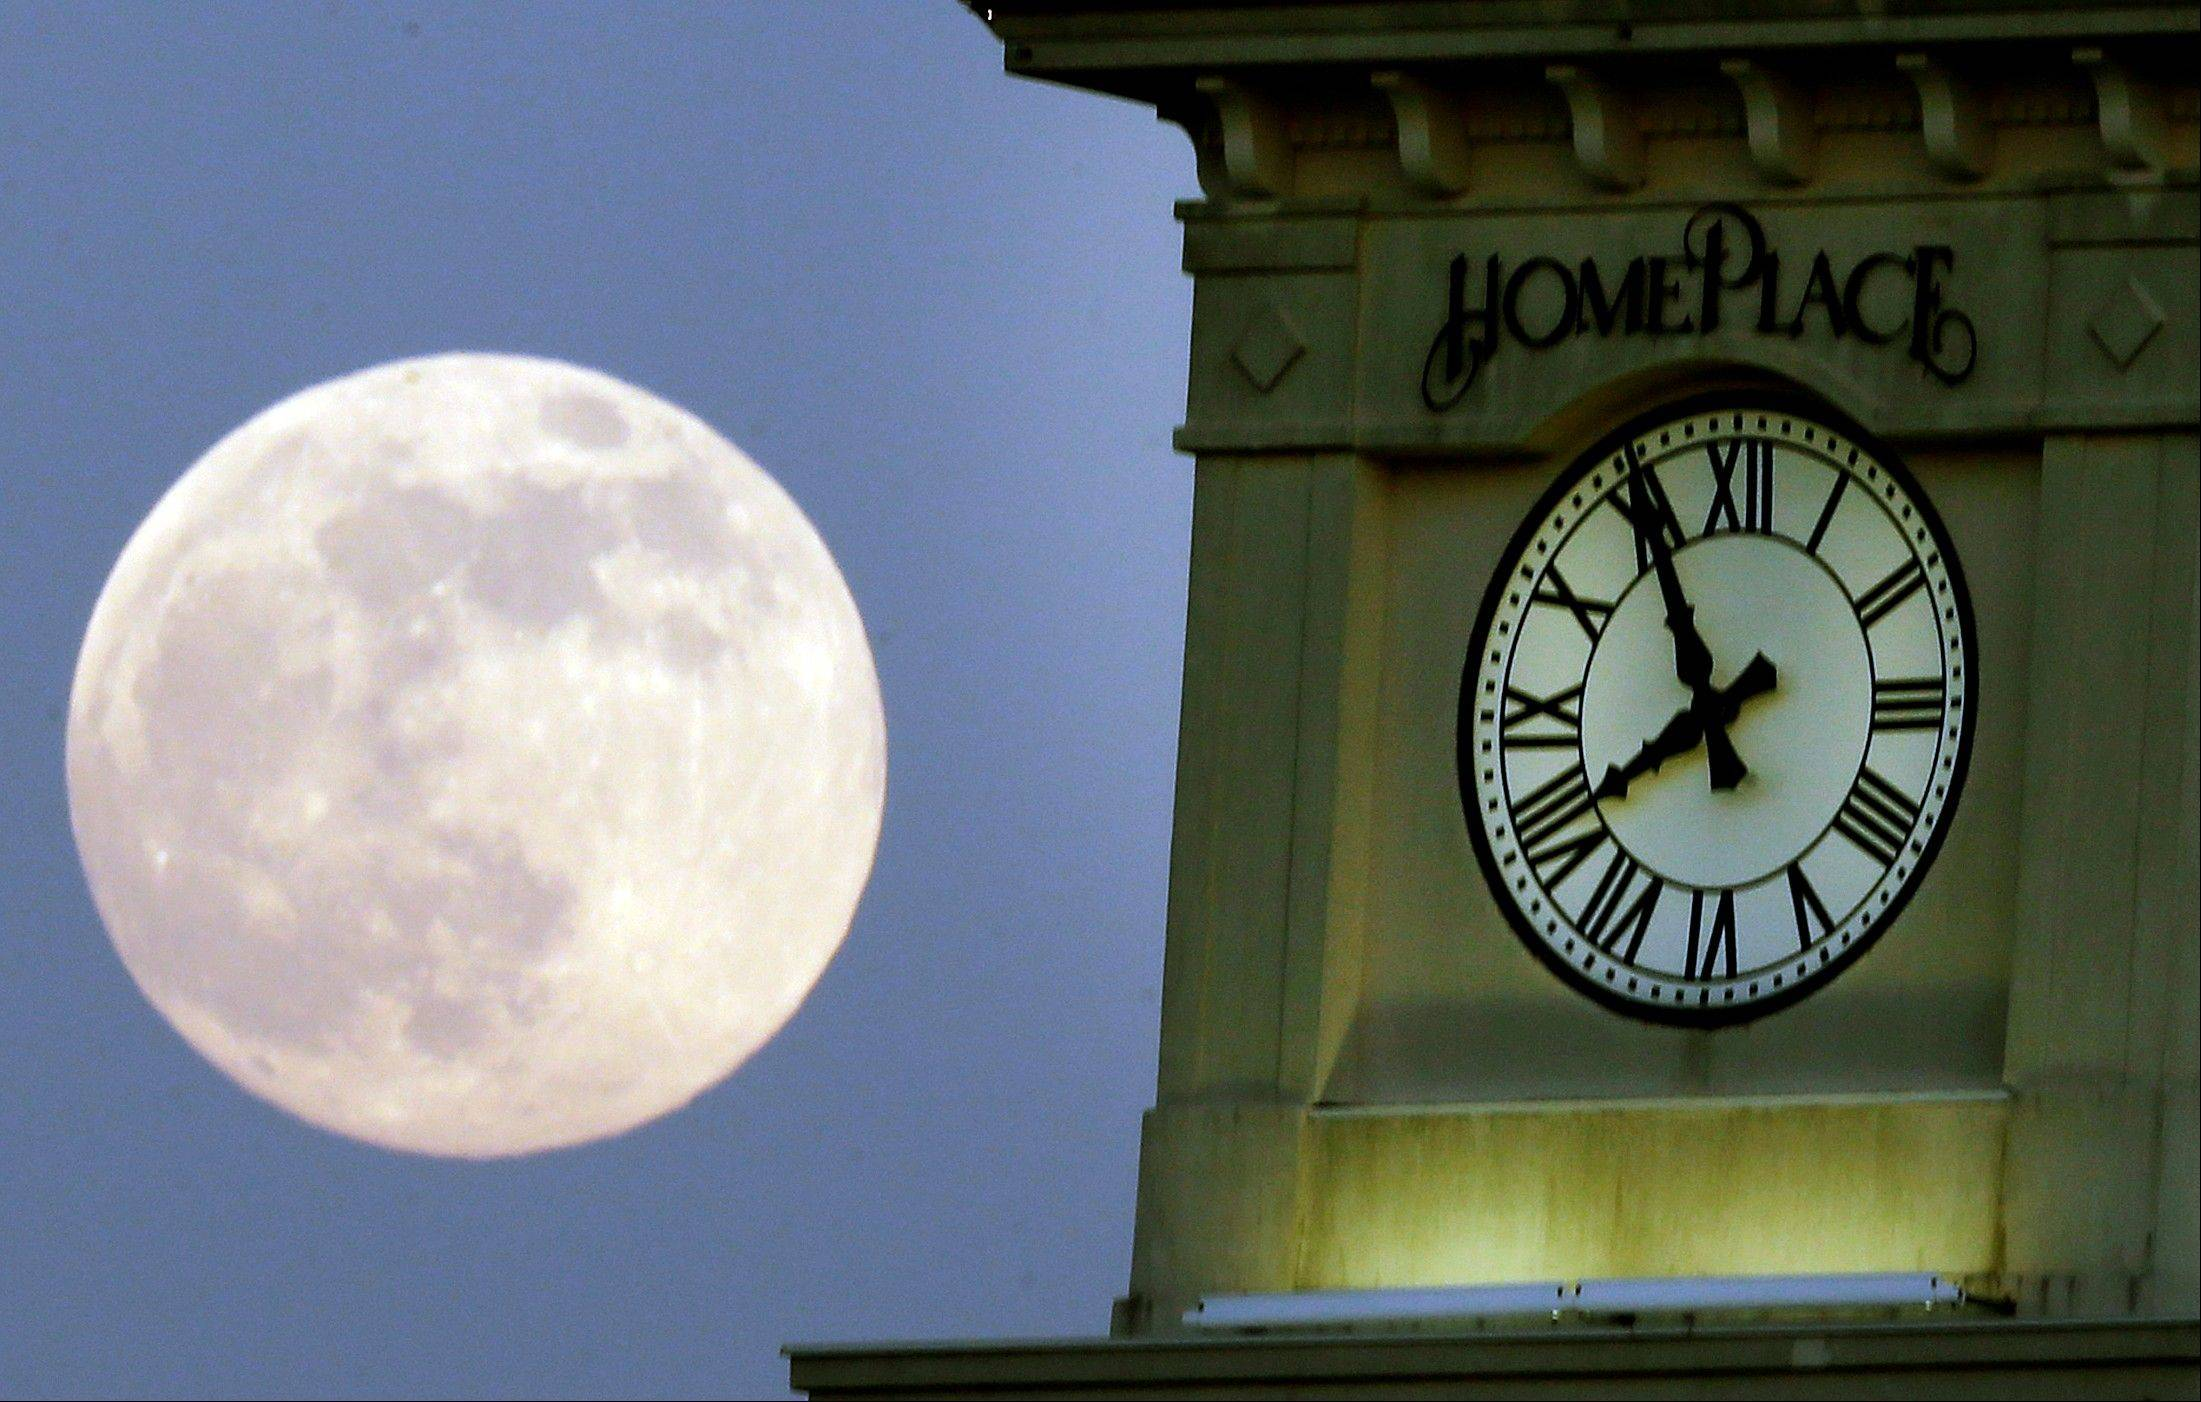 "A ""supermoon"" rises behind the Home Place clock tower in Prattville, Ala., Saturday, June 22, 2013. The biggest and brightest full moon of the year graces the sky early Sunday as our celestial neighbor swings closer to Earth than usual. While the moon will appear 14 percent larger than normal, sky watchers won't be able to notice the difference with the naked eye. Still, astronomers say it's worth looking up and appreciating the cosmos."